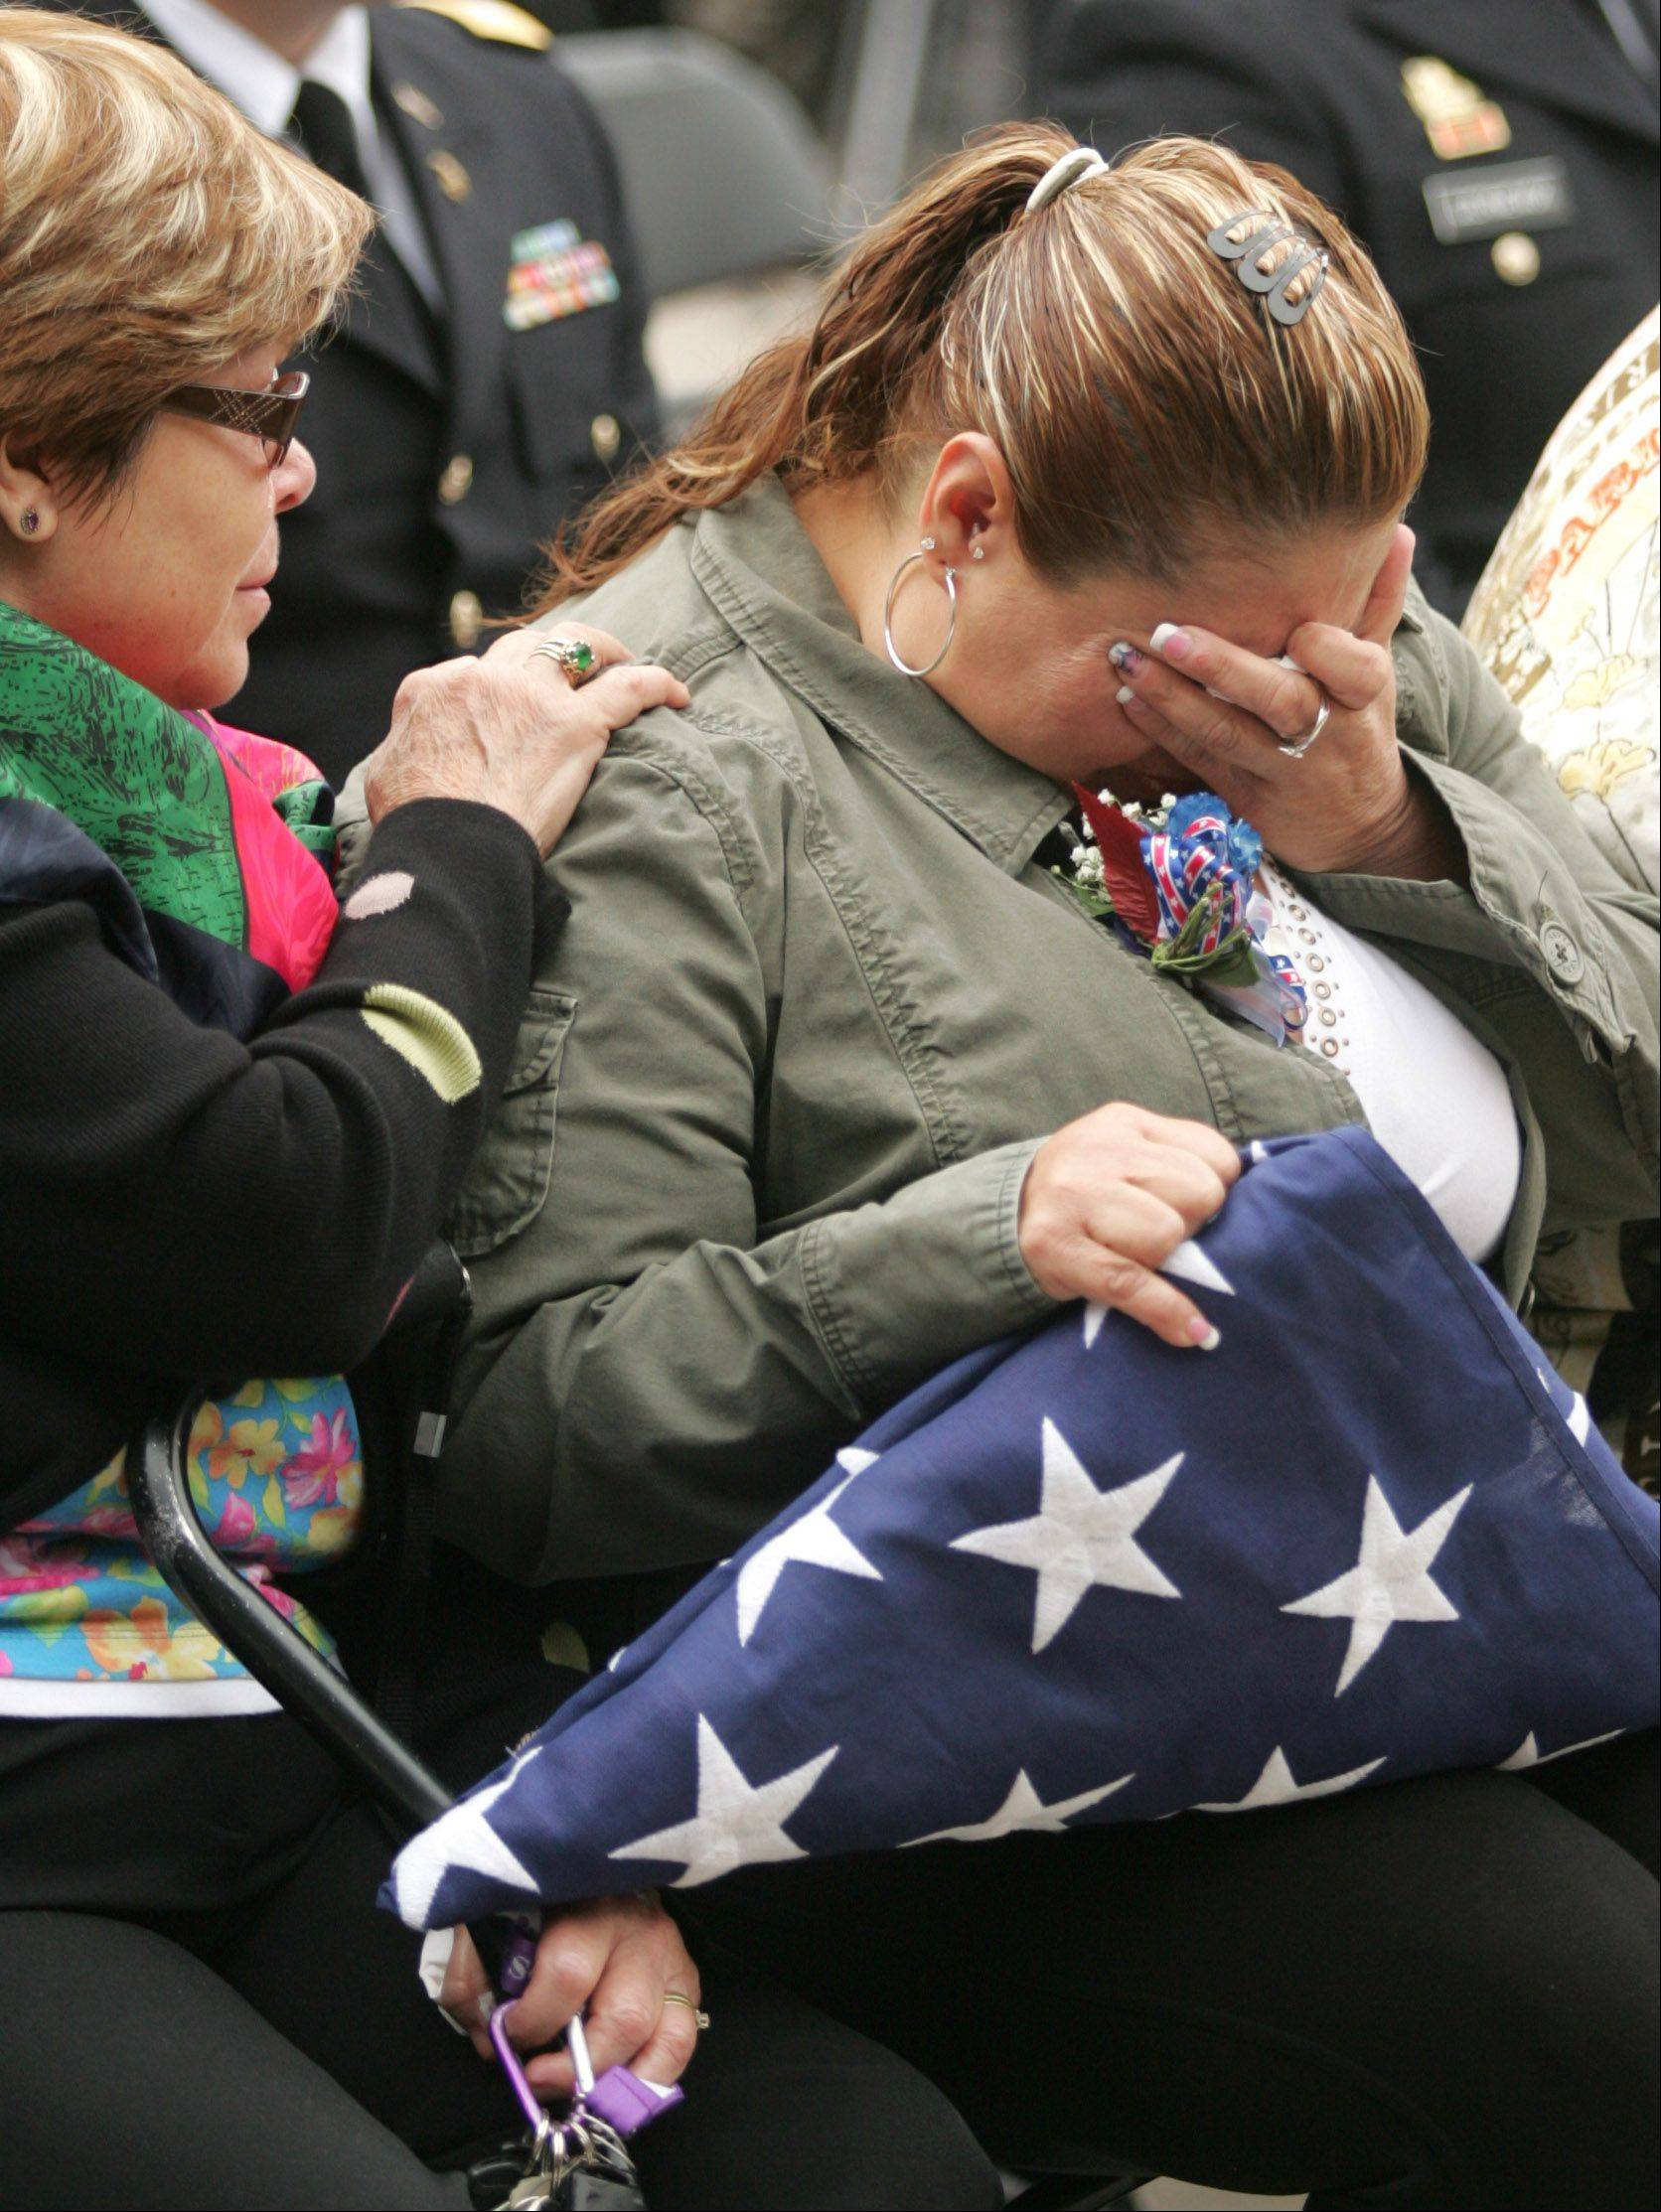 Nancy Ramos, who lost her son Hector in the Iraq War, is comforted by her mother, Irene Baker, during a ceremony Friday in Aurora marking the 10-year anniversary of the Sept. 11 attacks.